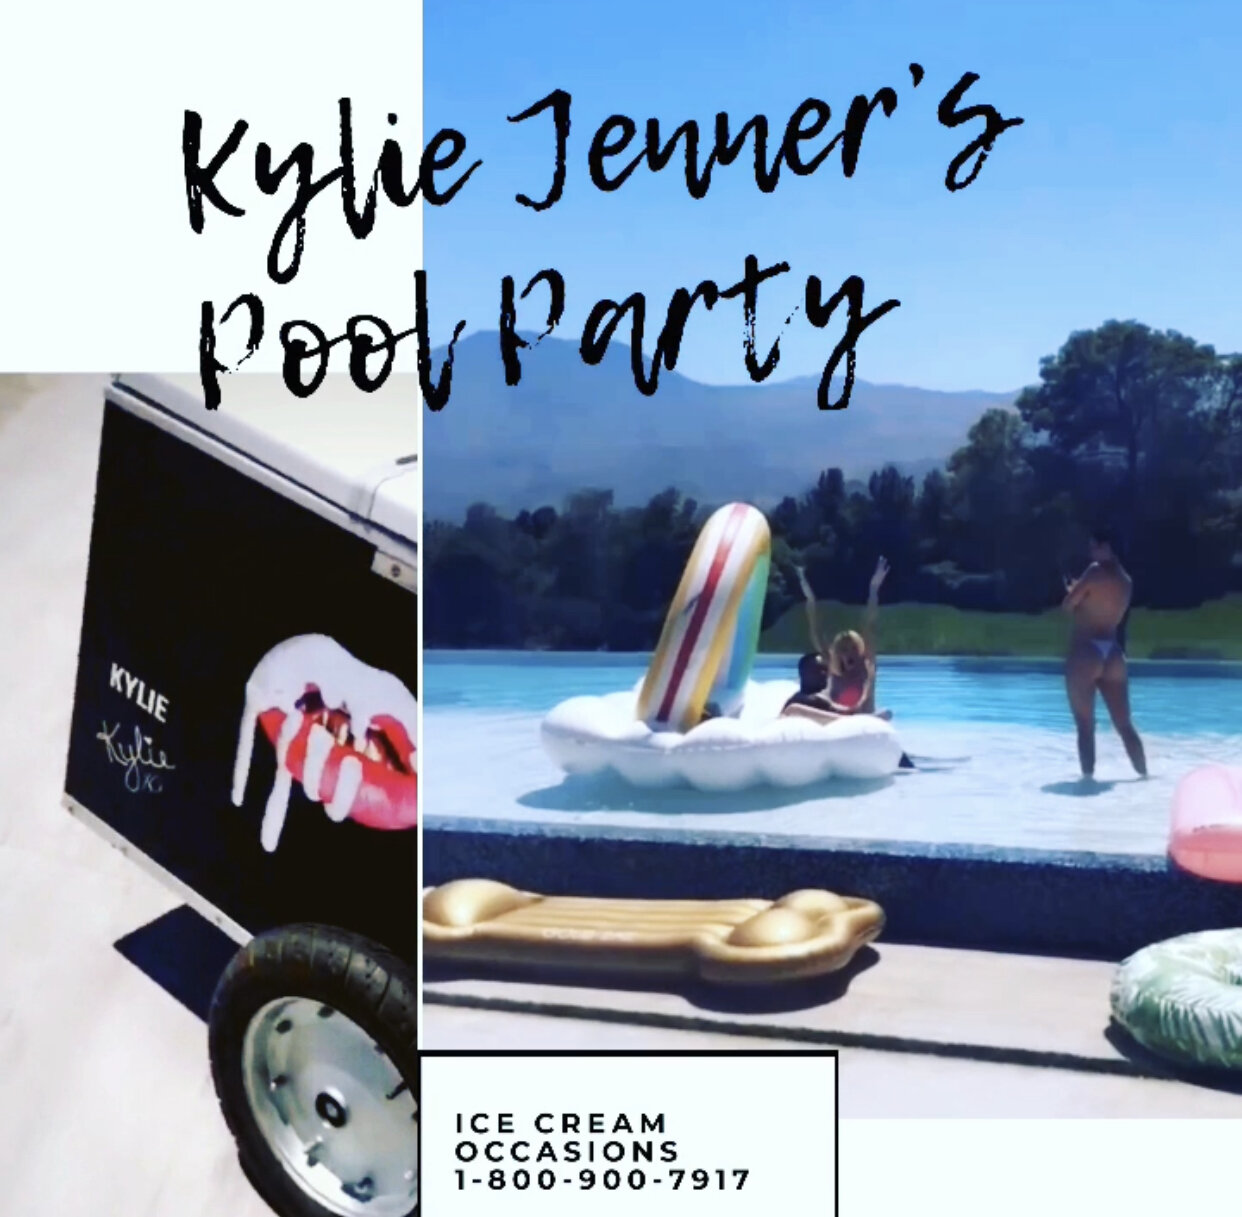 Kylie Jenner - Branded ice cream cart for Kylie Jenner's pool party